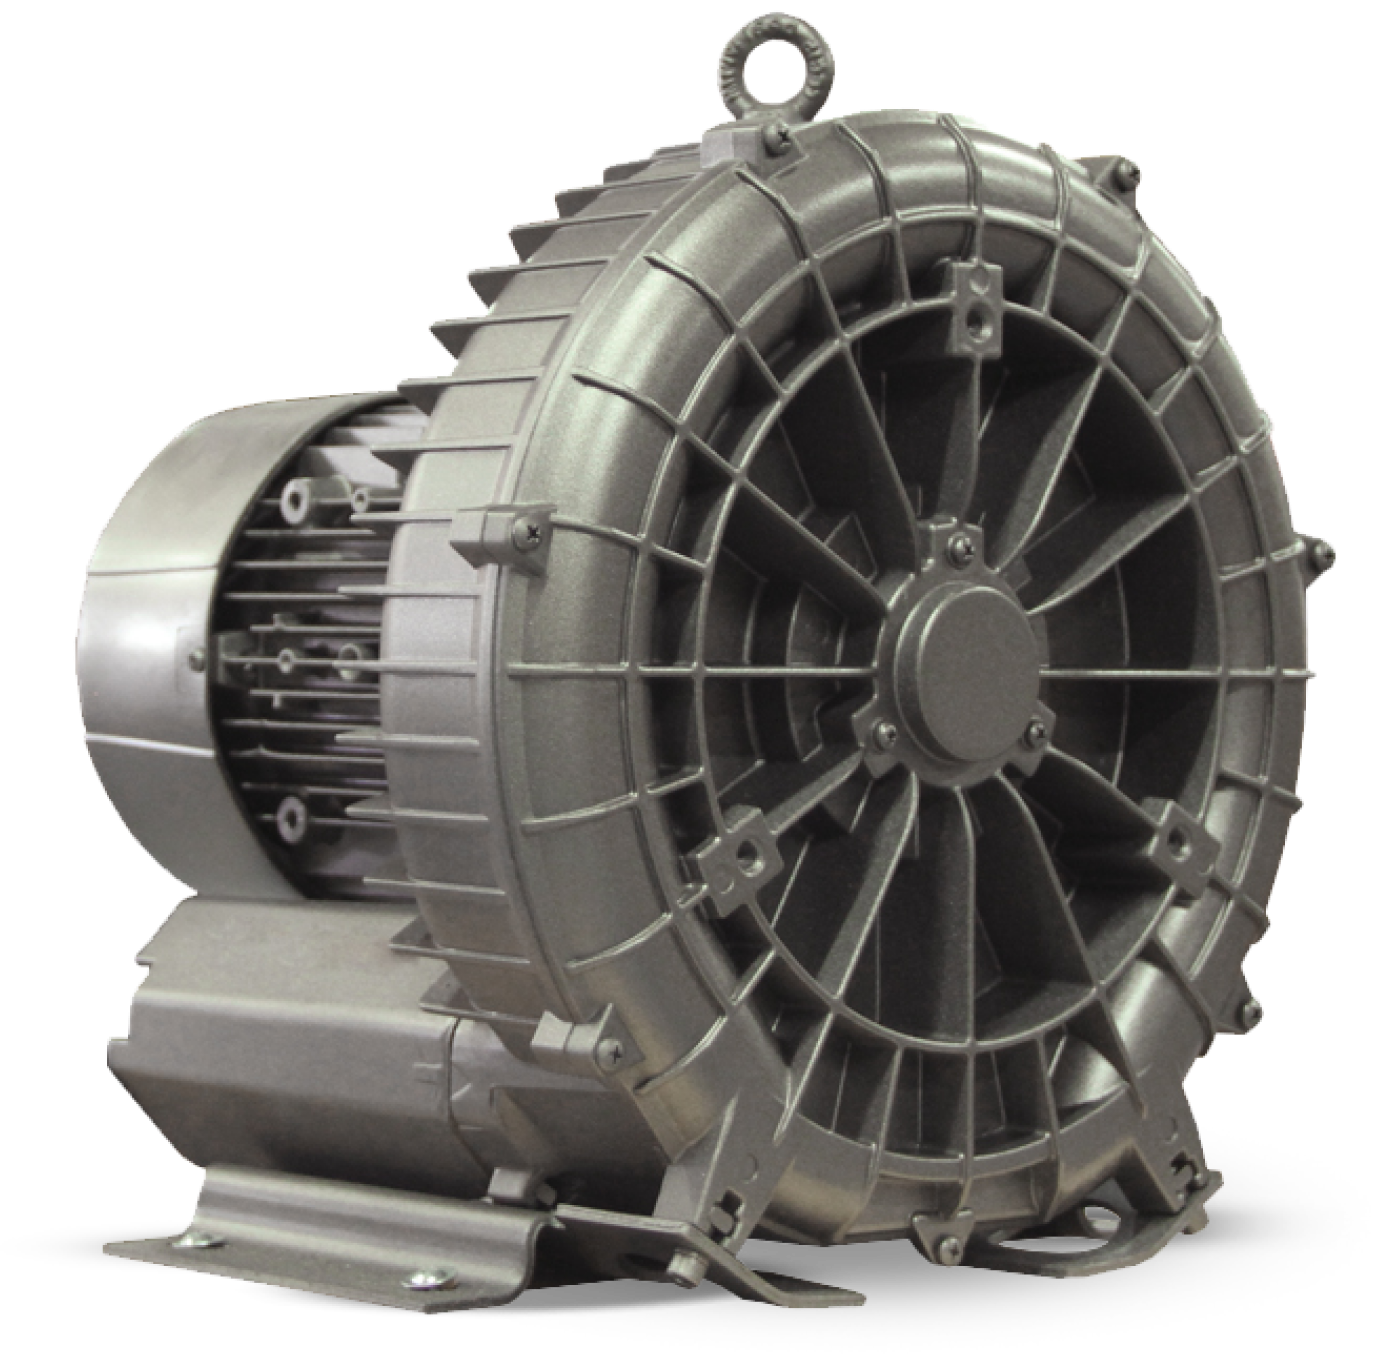 A Republic regenerative blower